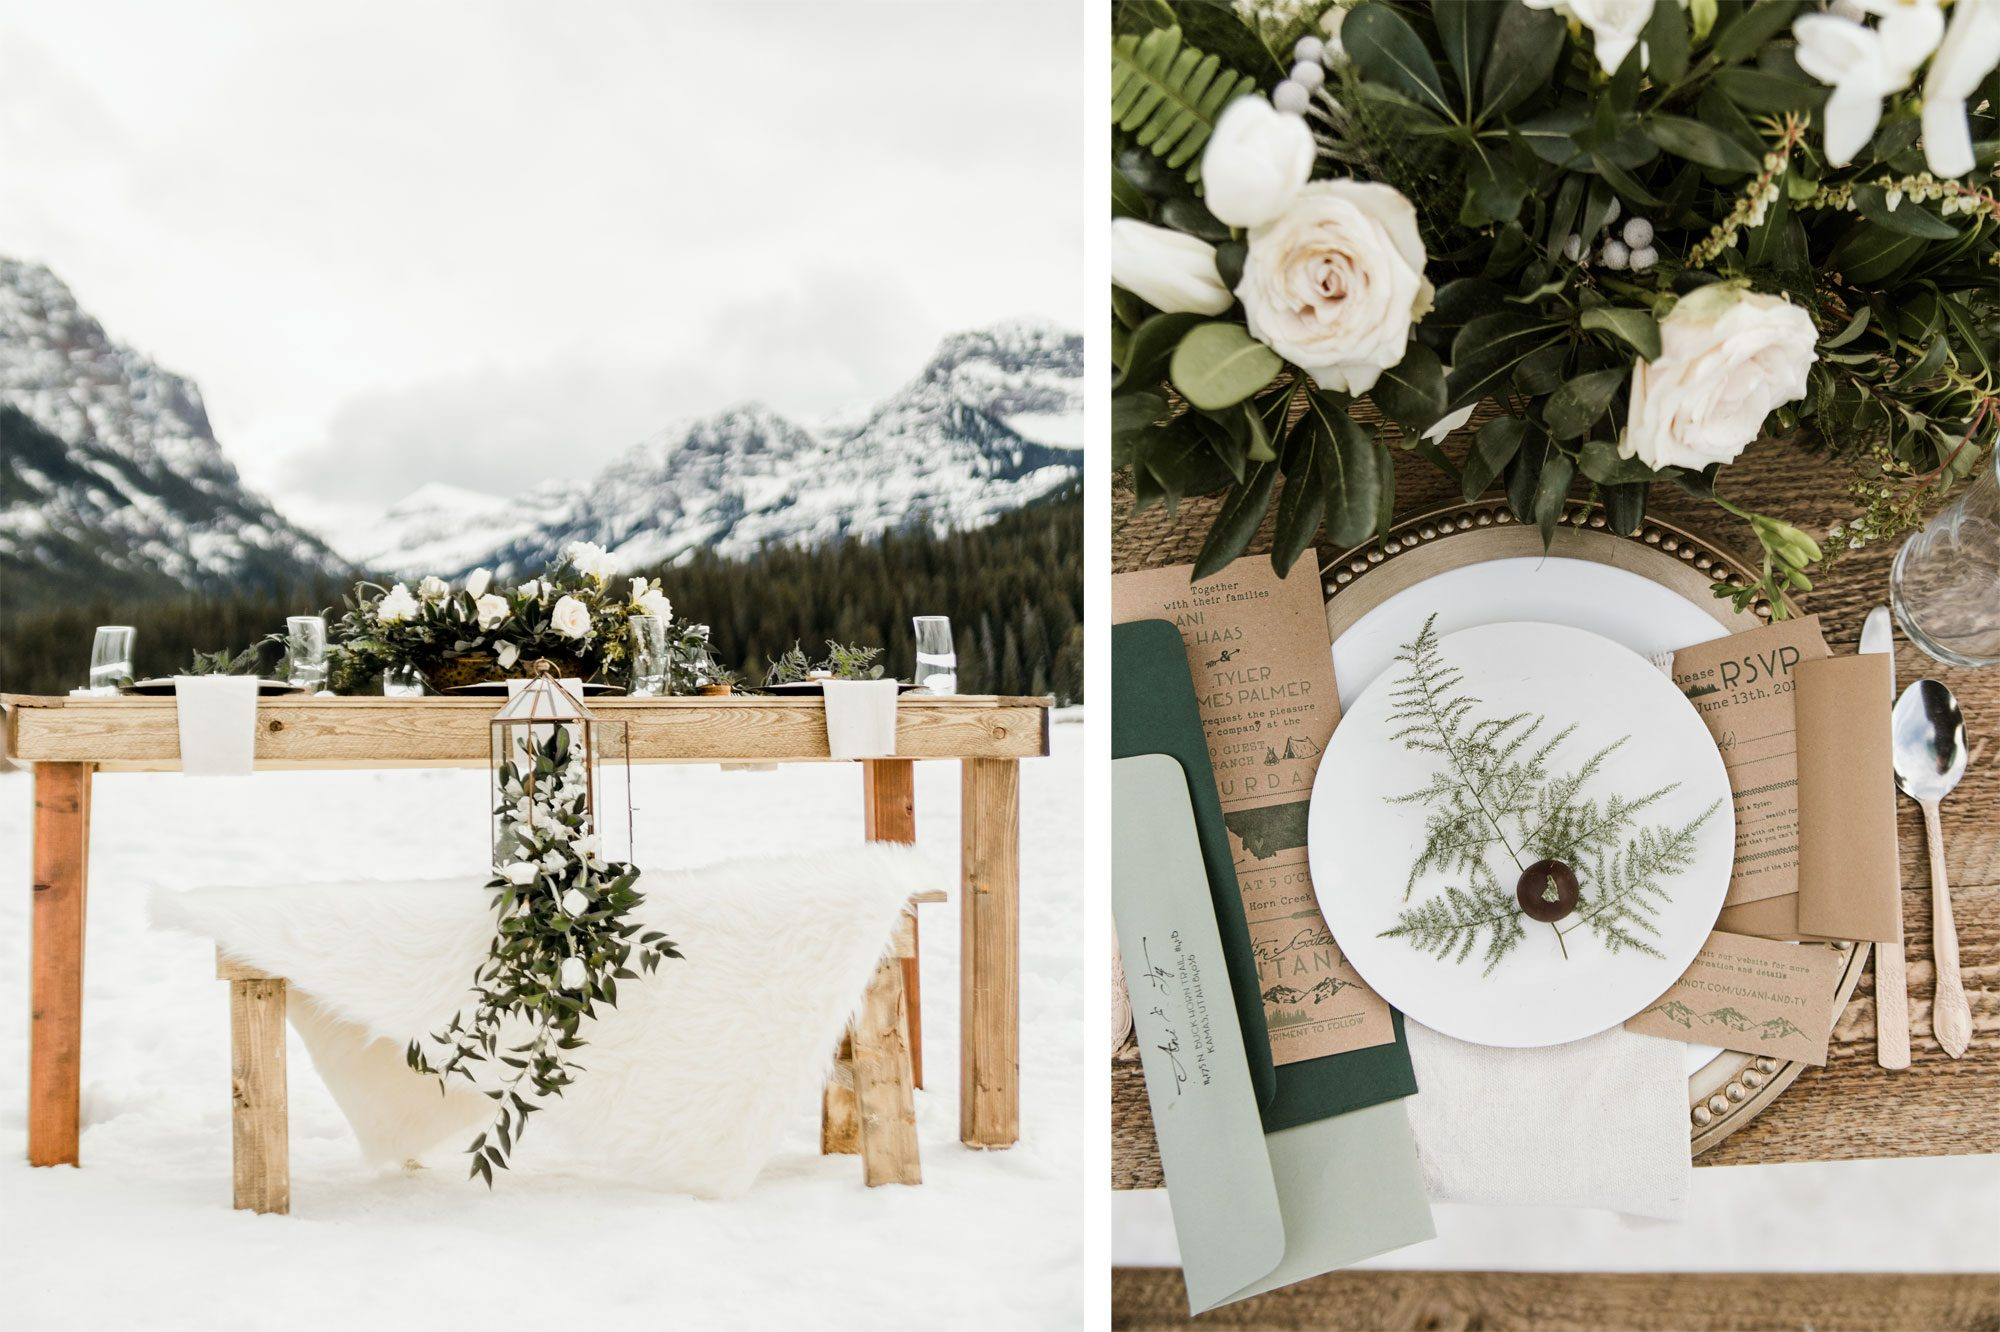 A winter tablescape in the montains with wood, metal, white florals & greenery accents